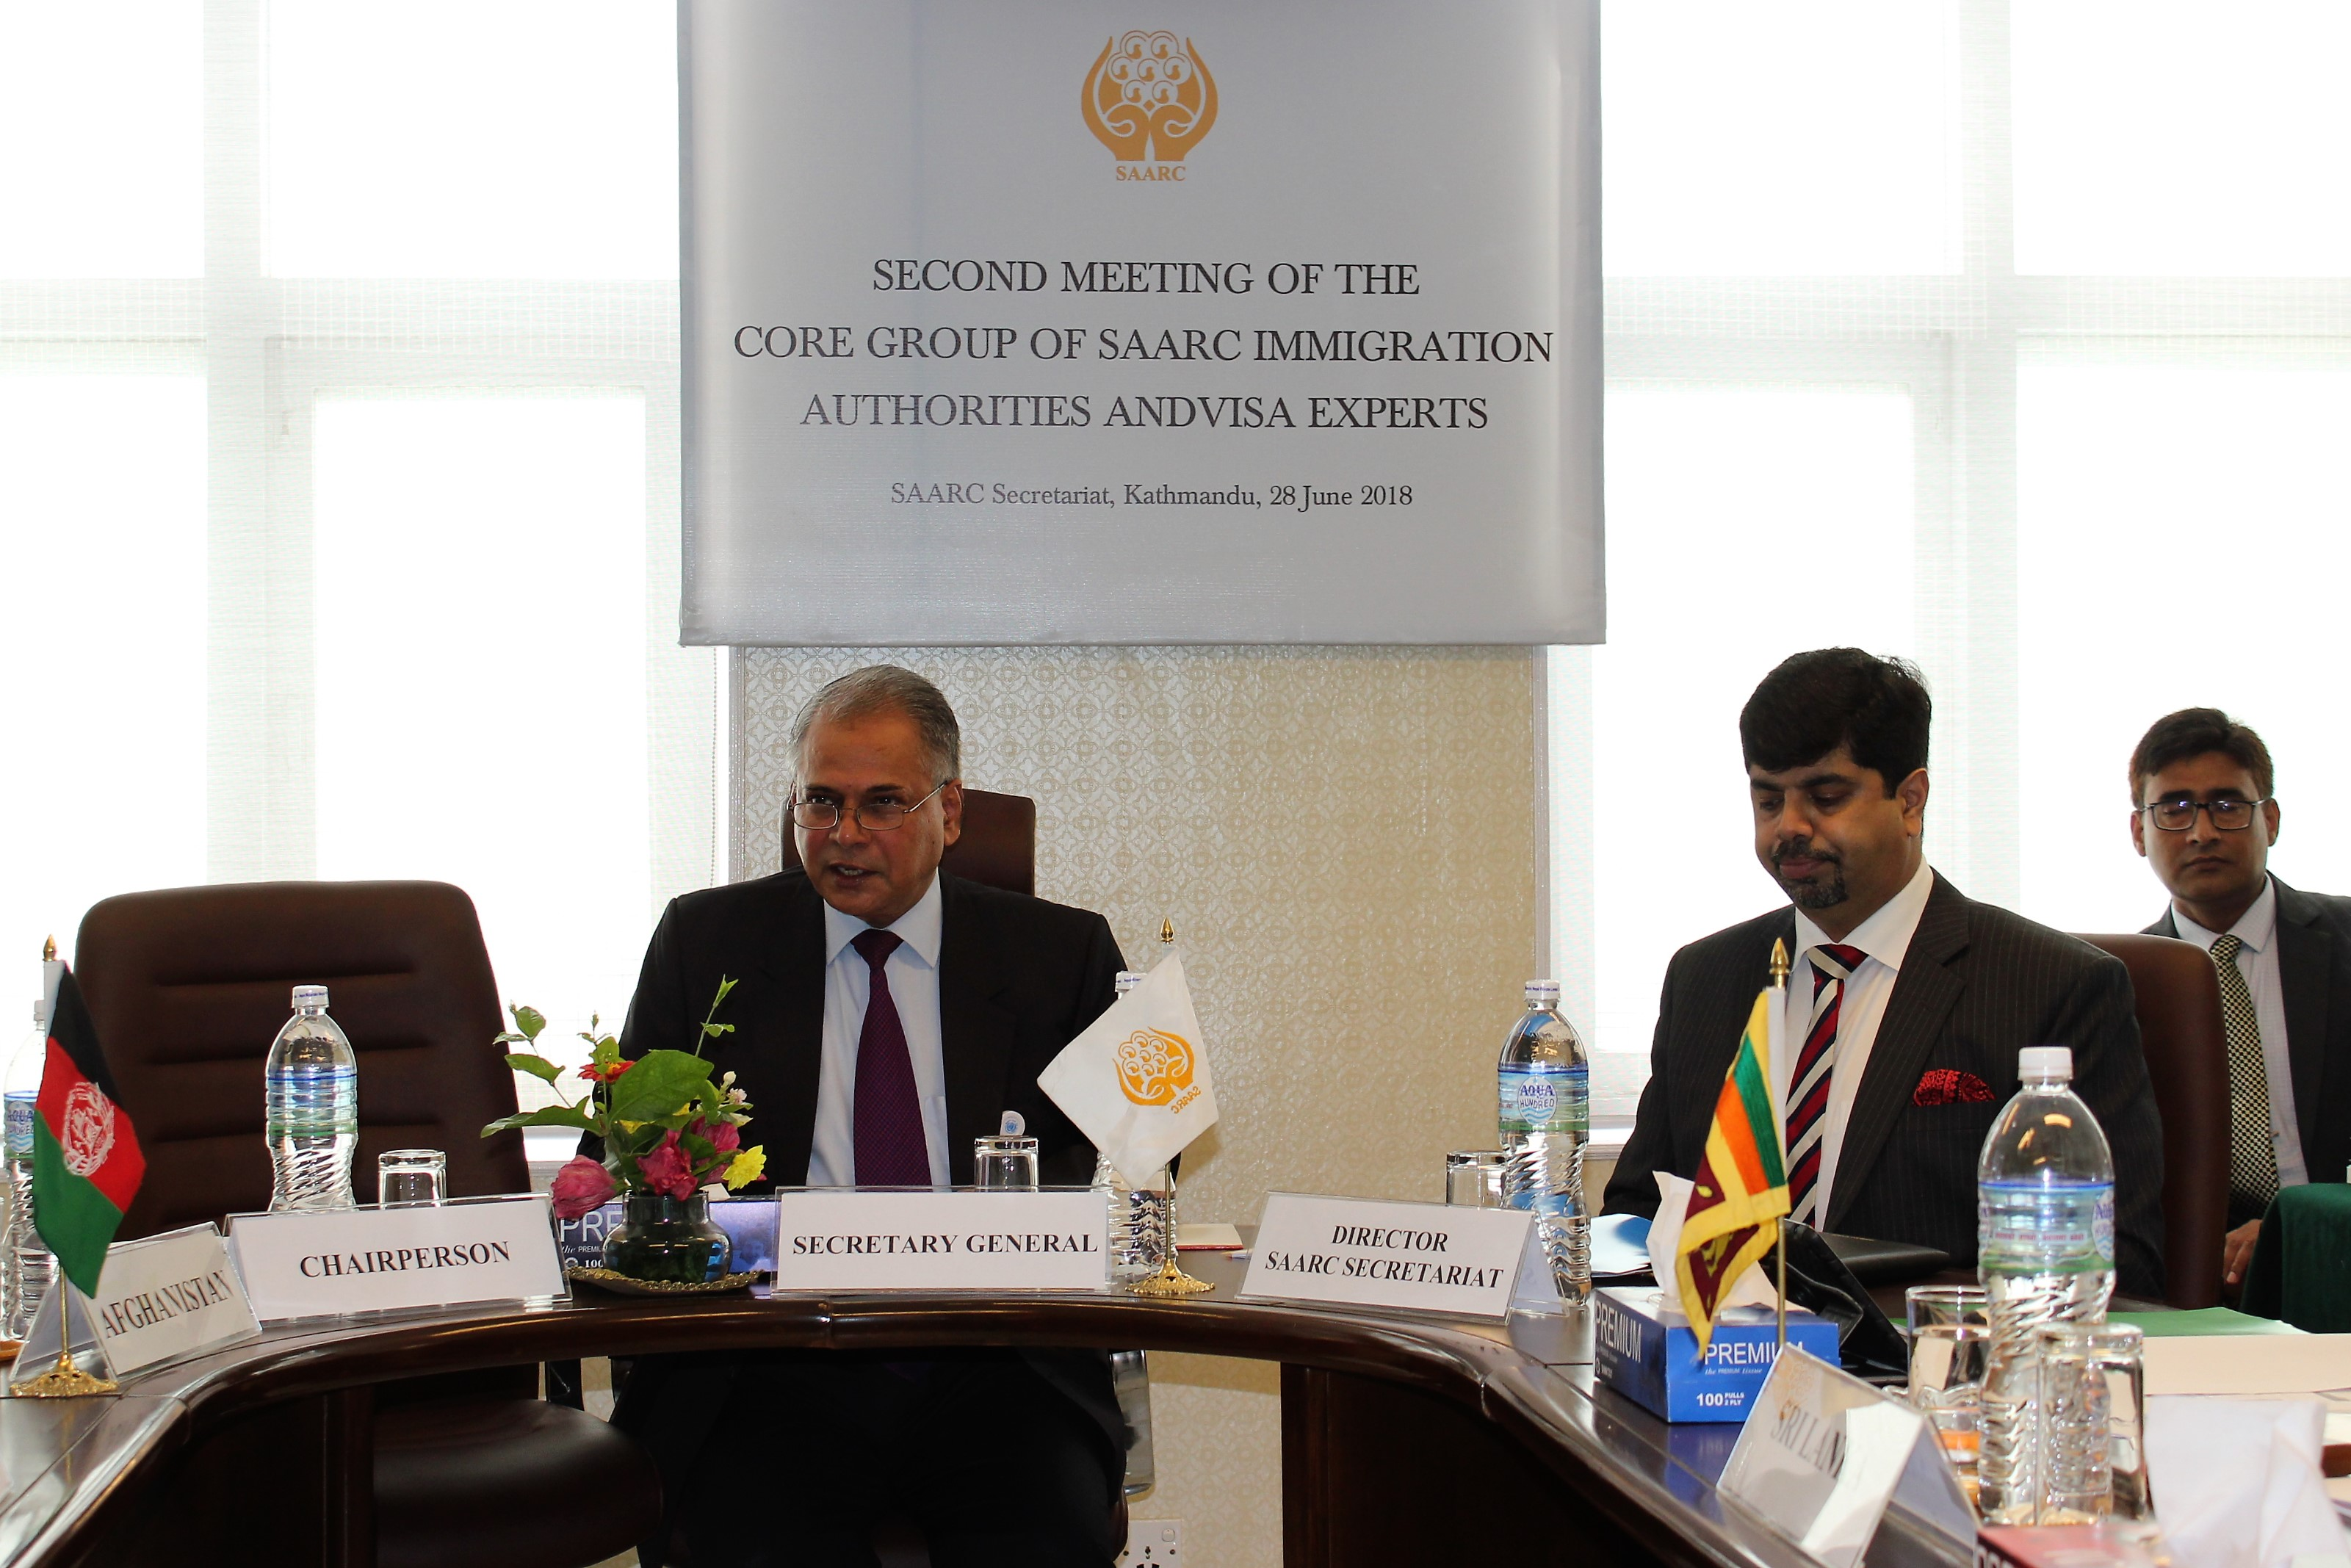 Addressing the meeting of the Core Group, H. E. Mr. Amjad Hussain B. Sial, Secretary General of SAARC